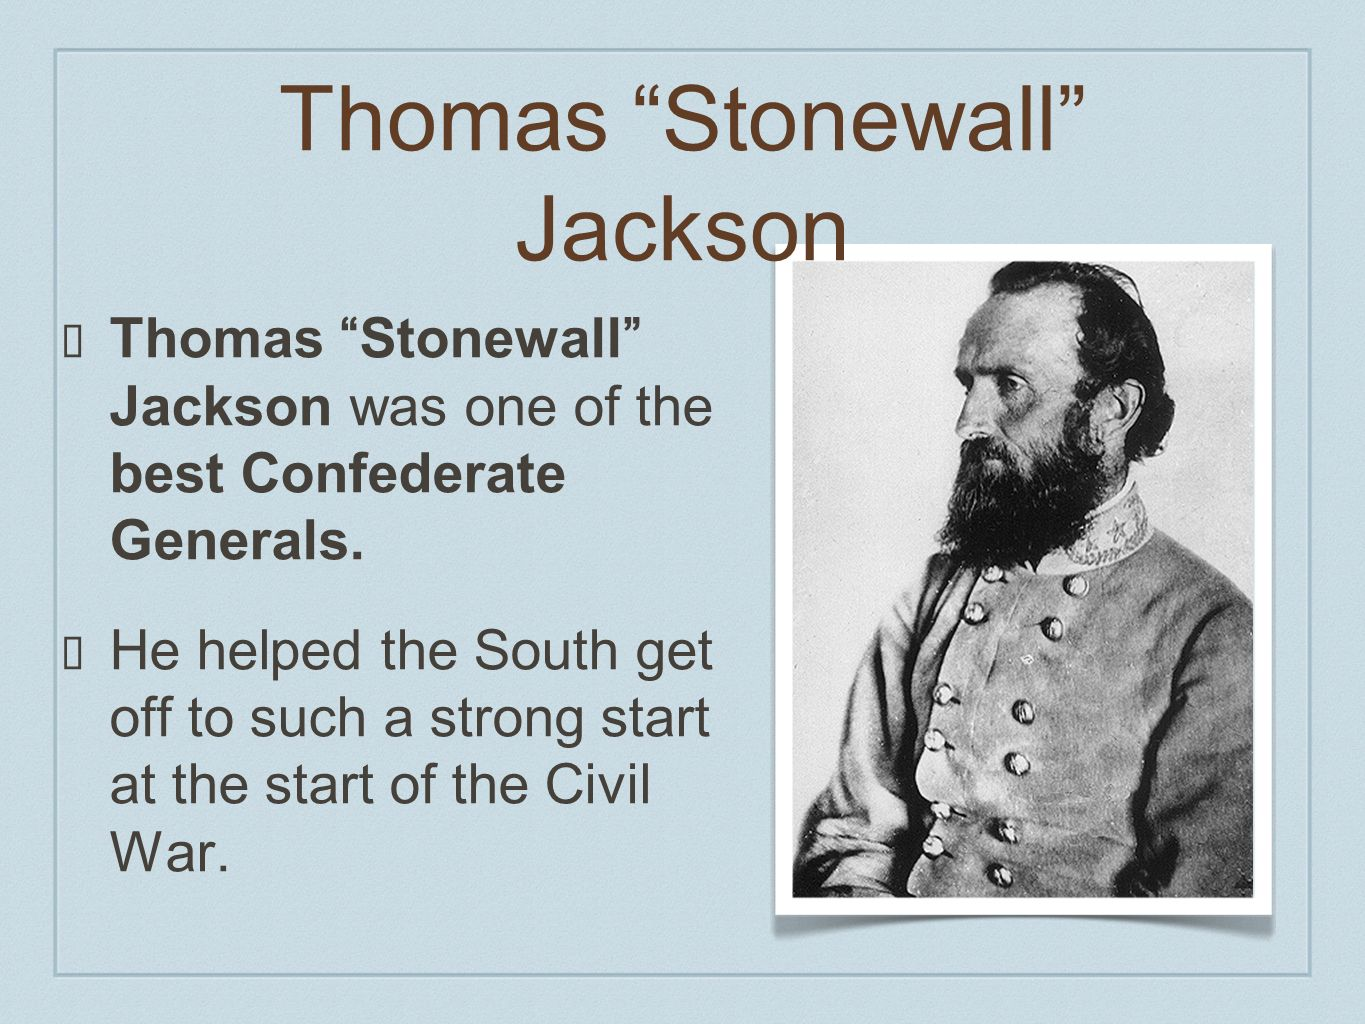 Thomas Stonewall Jackson Thomas Stonewall Jackson was one of the best Confederate Generals. He helped the South get off to such a strong start at the